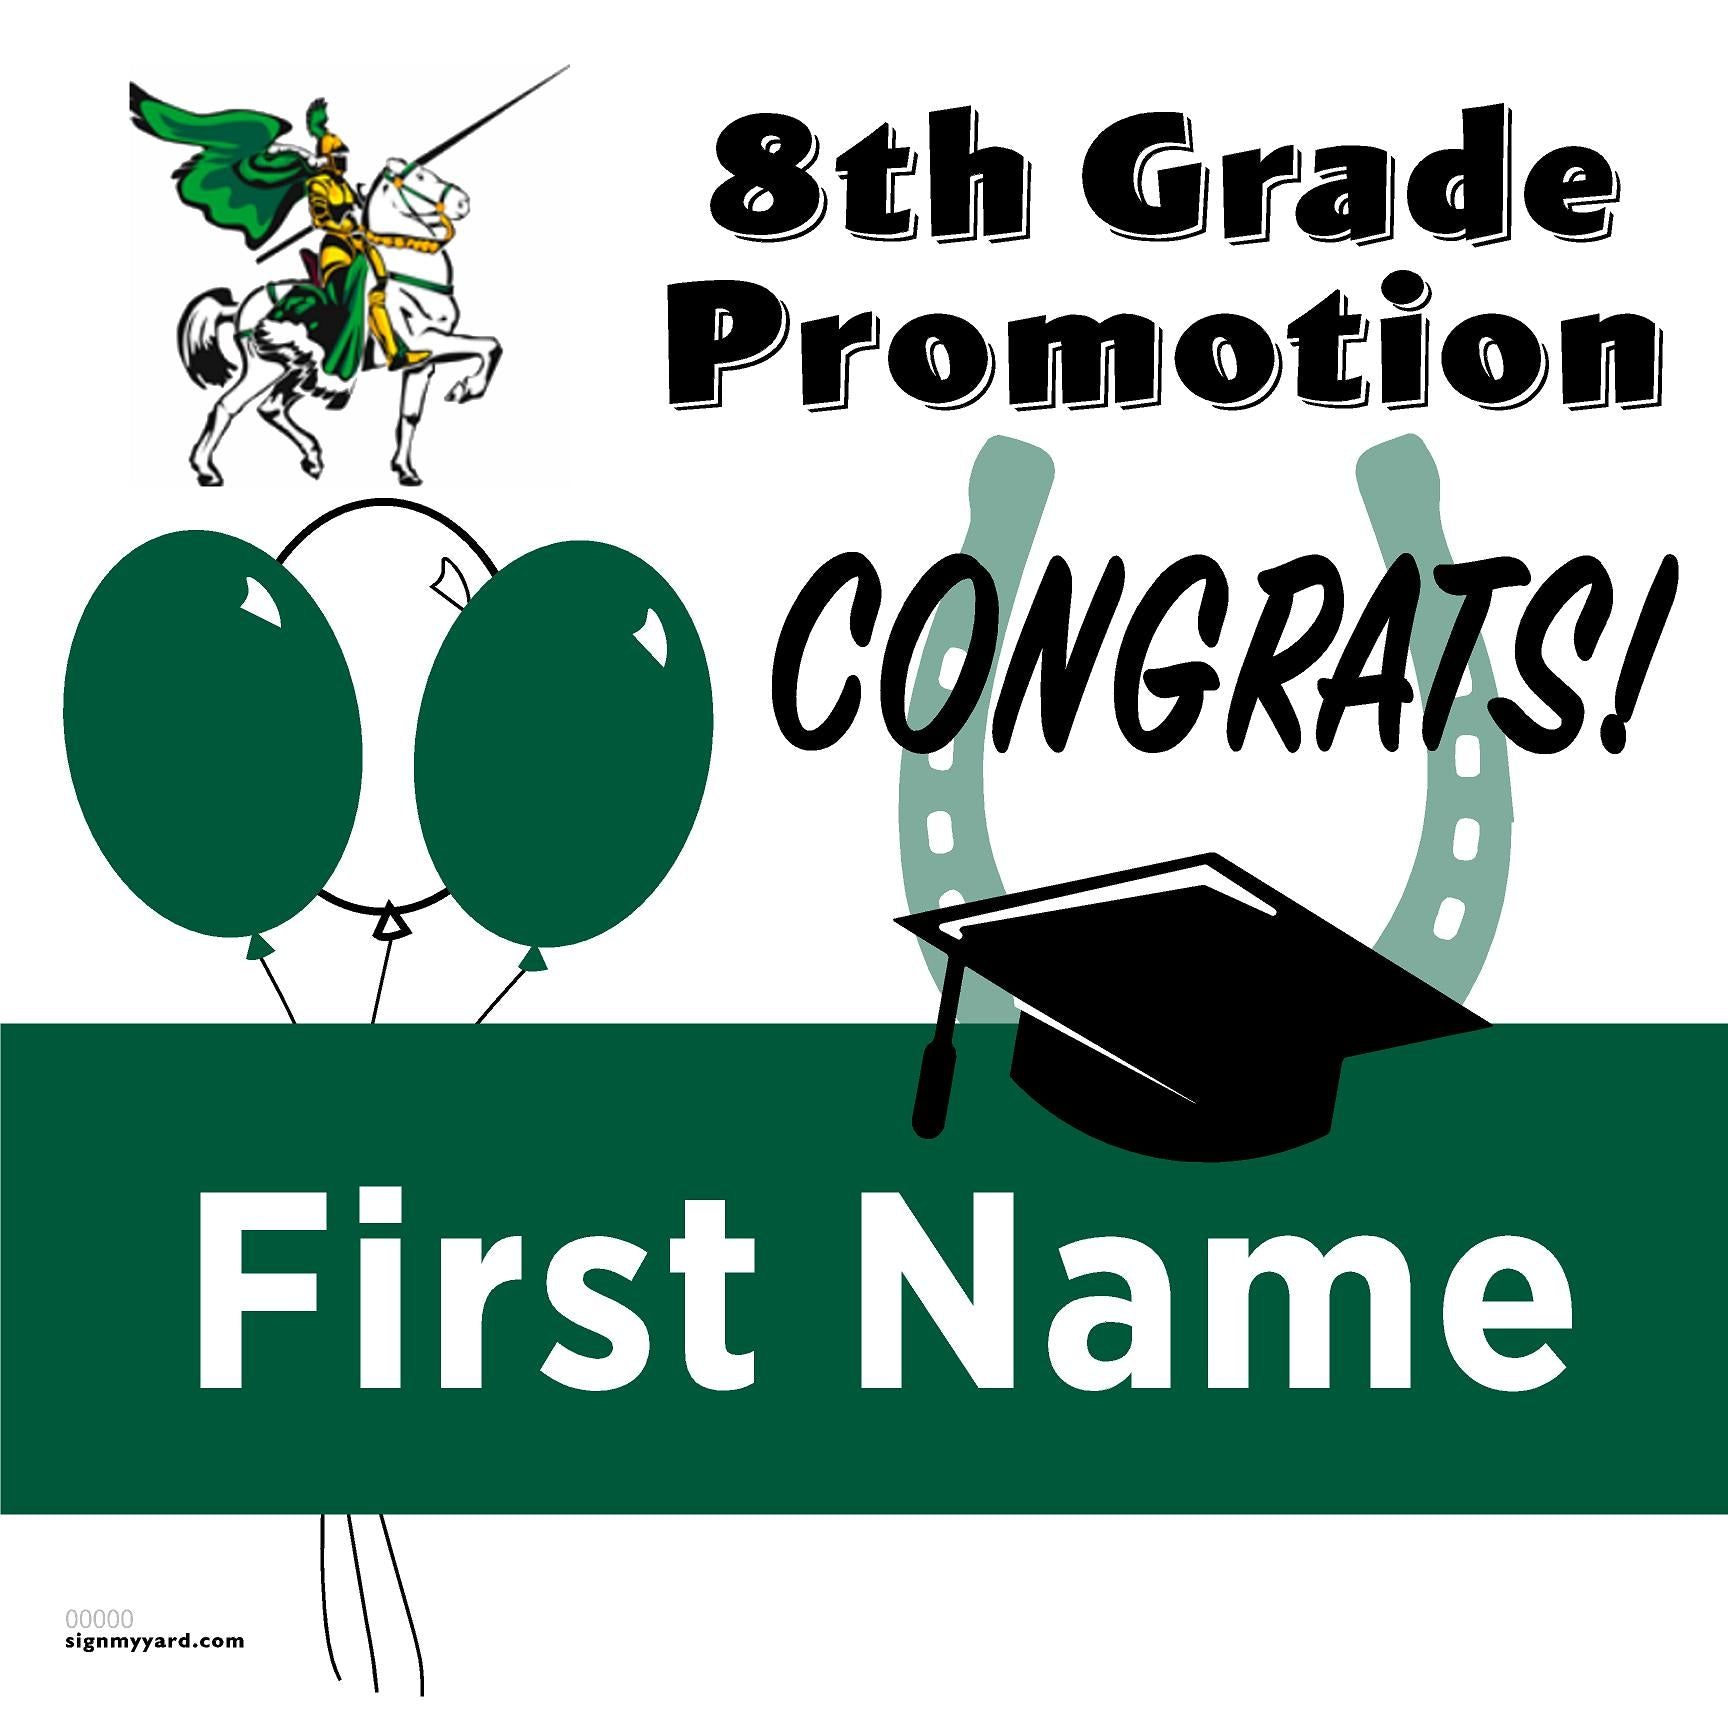 Charlotte Wood Middle School 8th Grade Promotion 24x24 #shineon2024 Yard Sign (Option A)